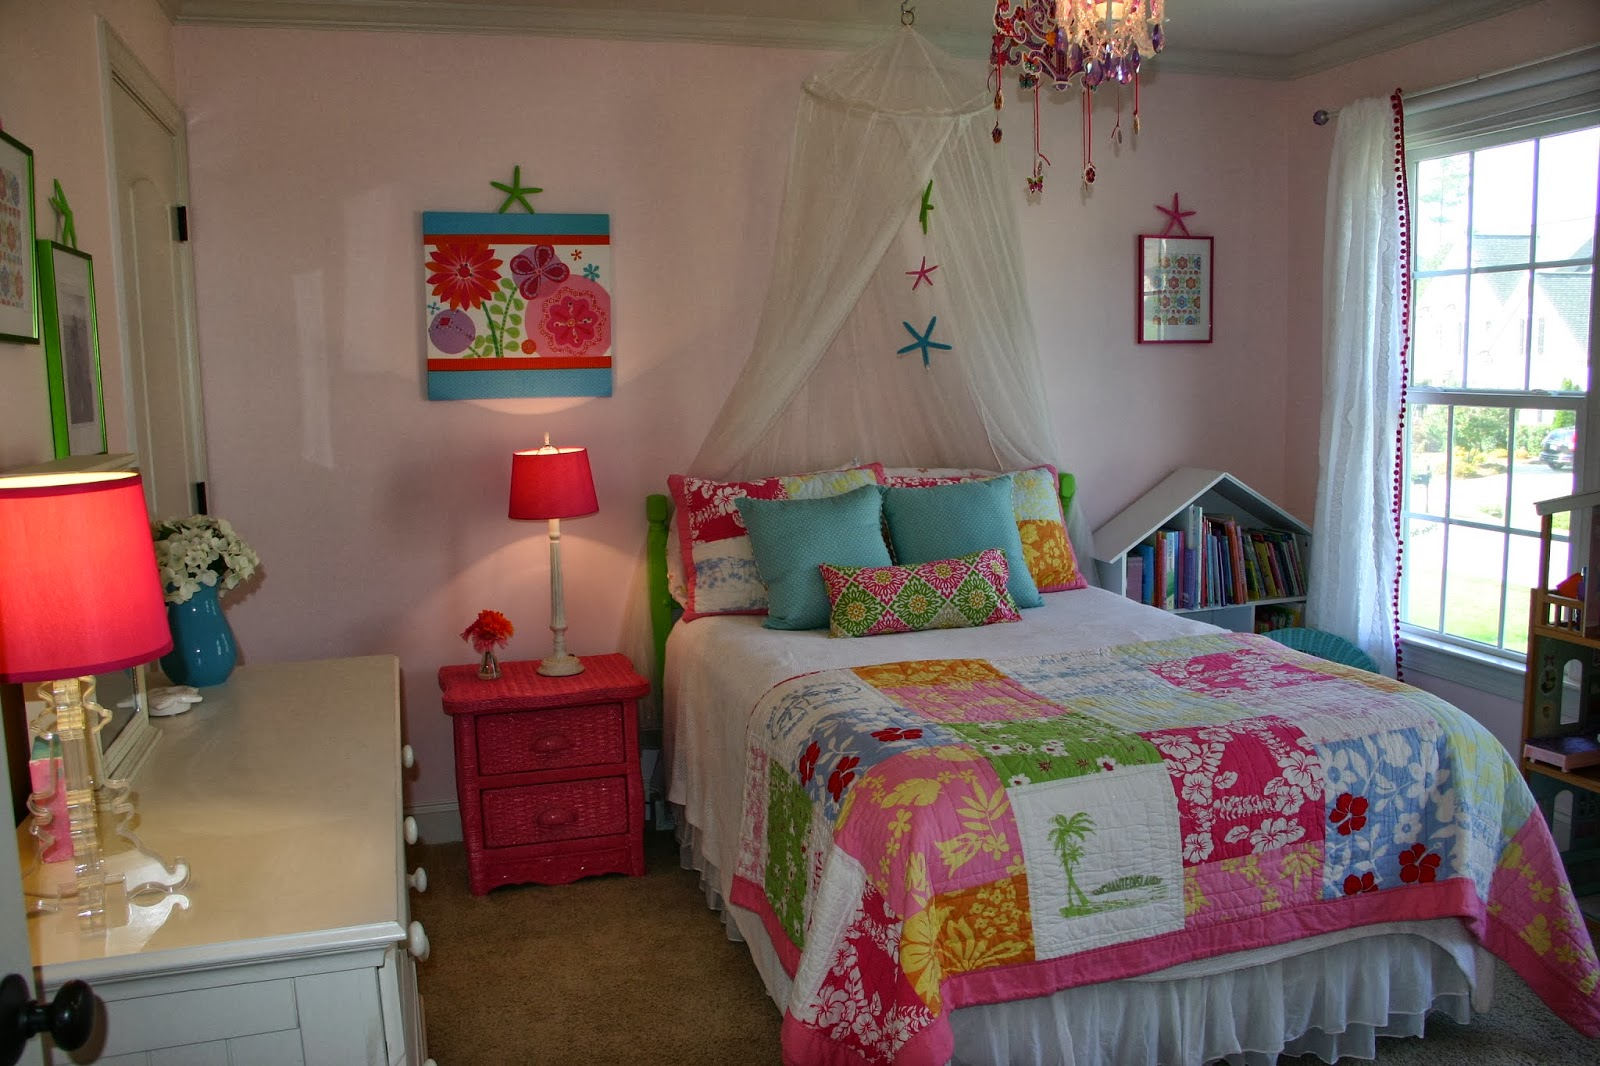 Cottage blue designs spiced up room for a sparkly girl for 7 year old bedroom ideas